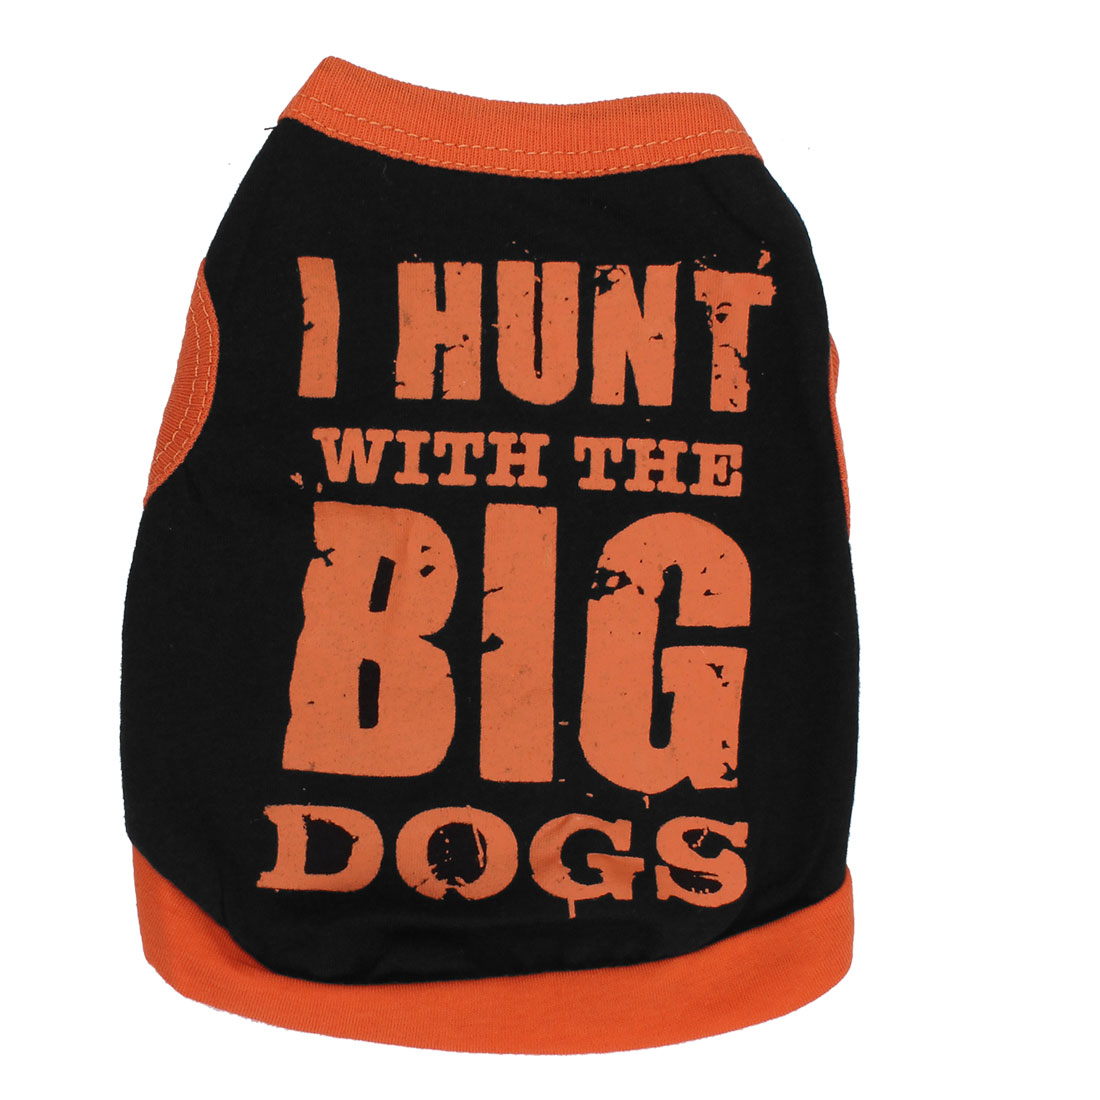 I HUNT BIG DOG Pet Cat Undershirt Summer T-shirt Clothes Apparel Black Size XS